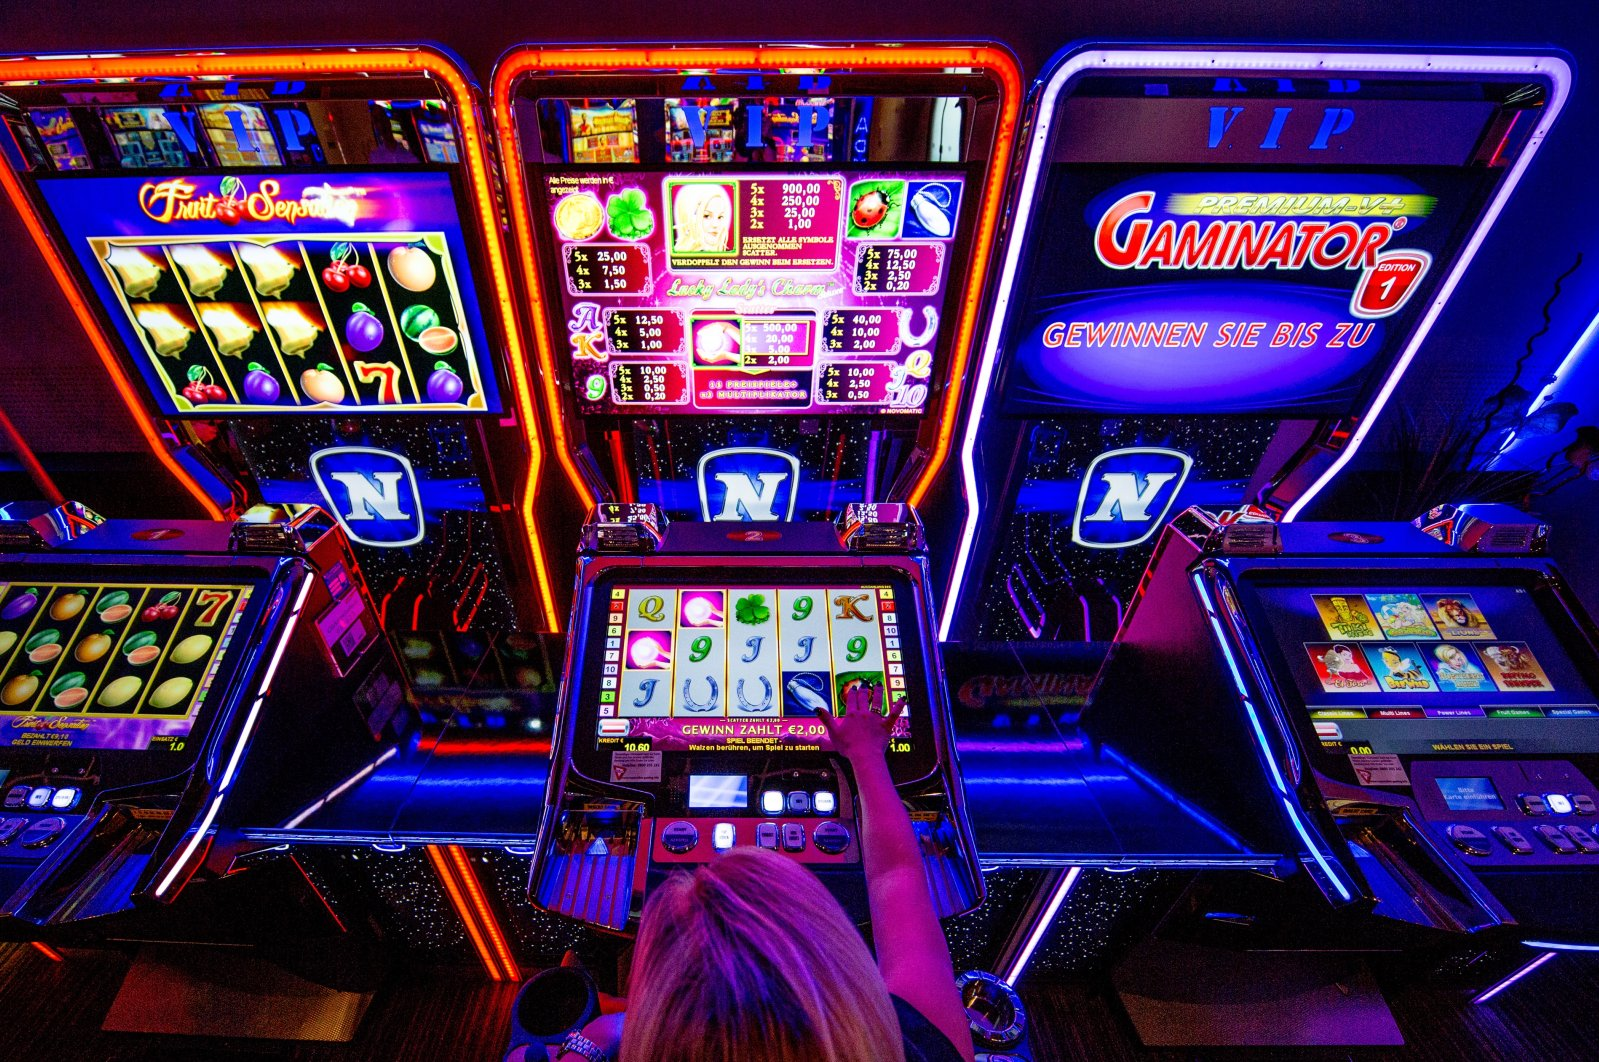 A customer plays on an electronic slot gambling machine inside a casino, in Wiener Neudorf, Austria, Aug. 17, 2017. (Photo by Getty Images)